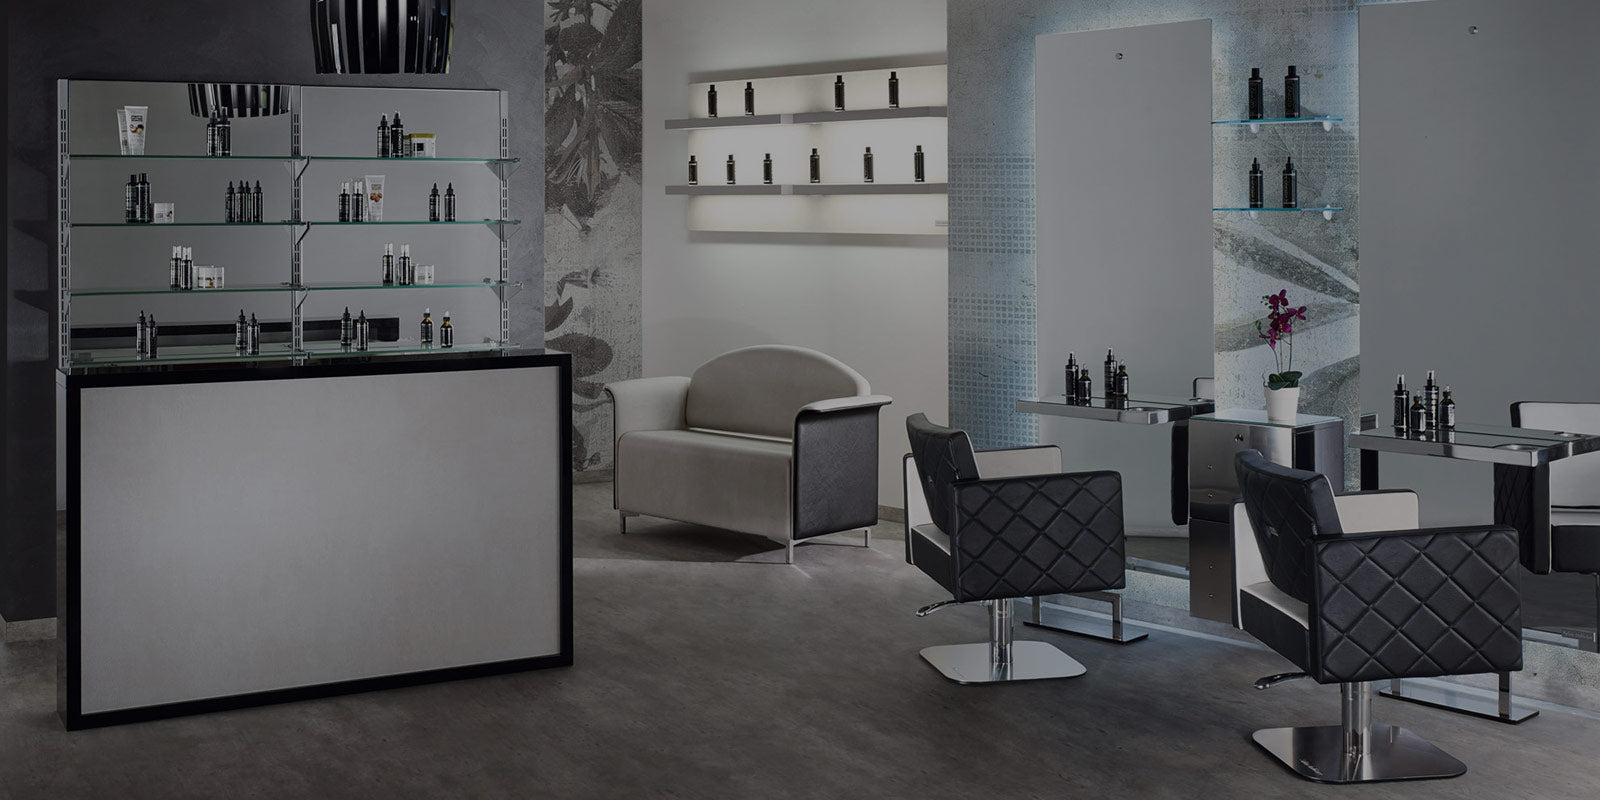 Best Beauty Products Supply And Salon Furniture Equipment Showroom